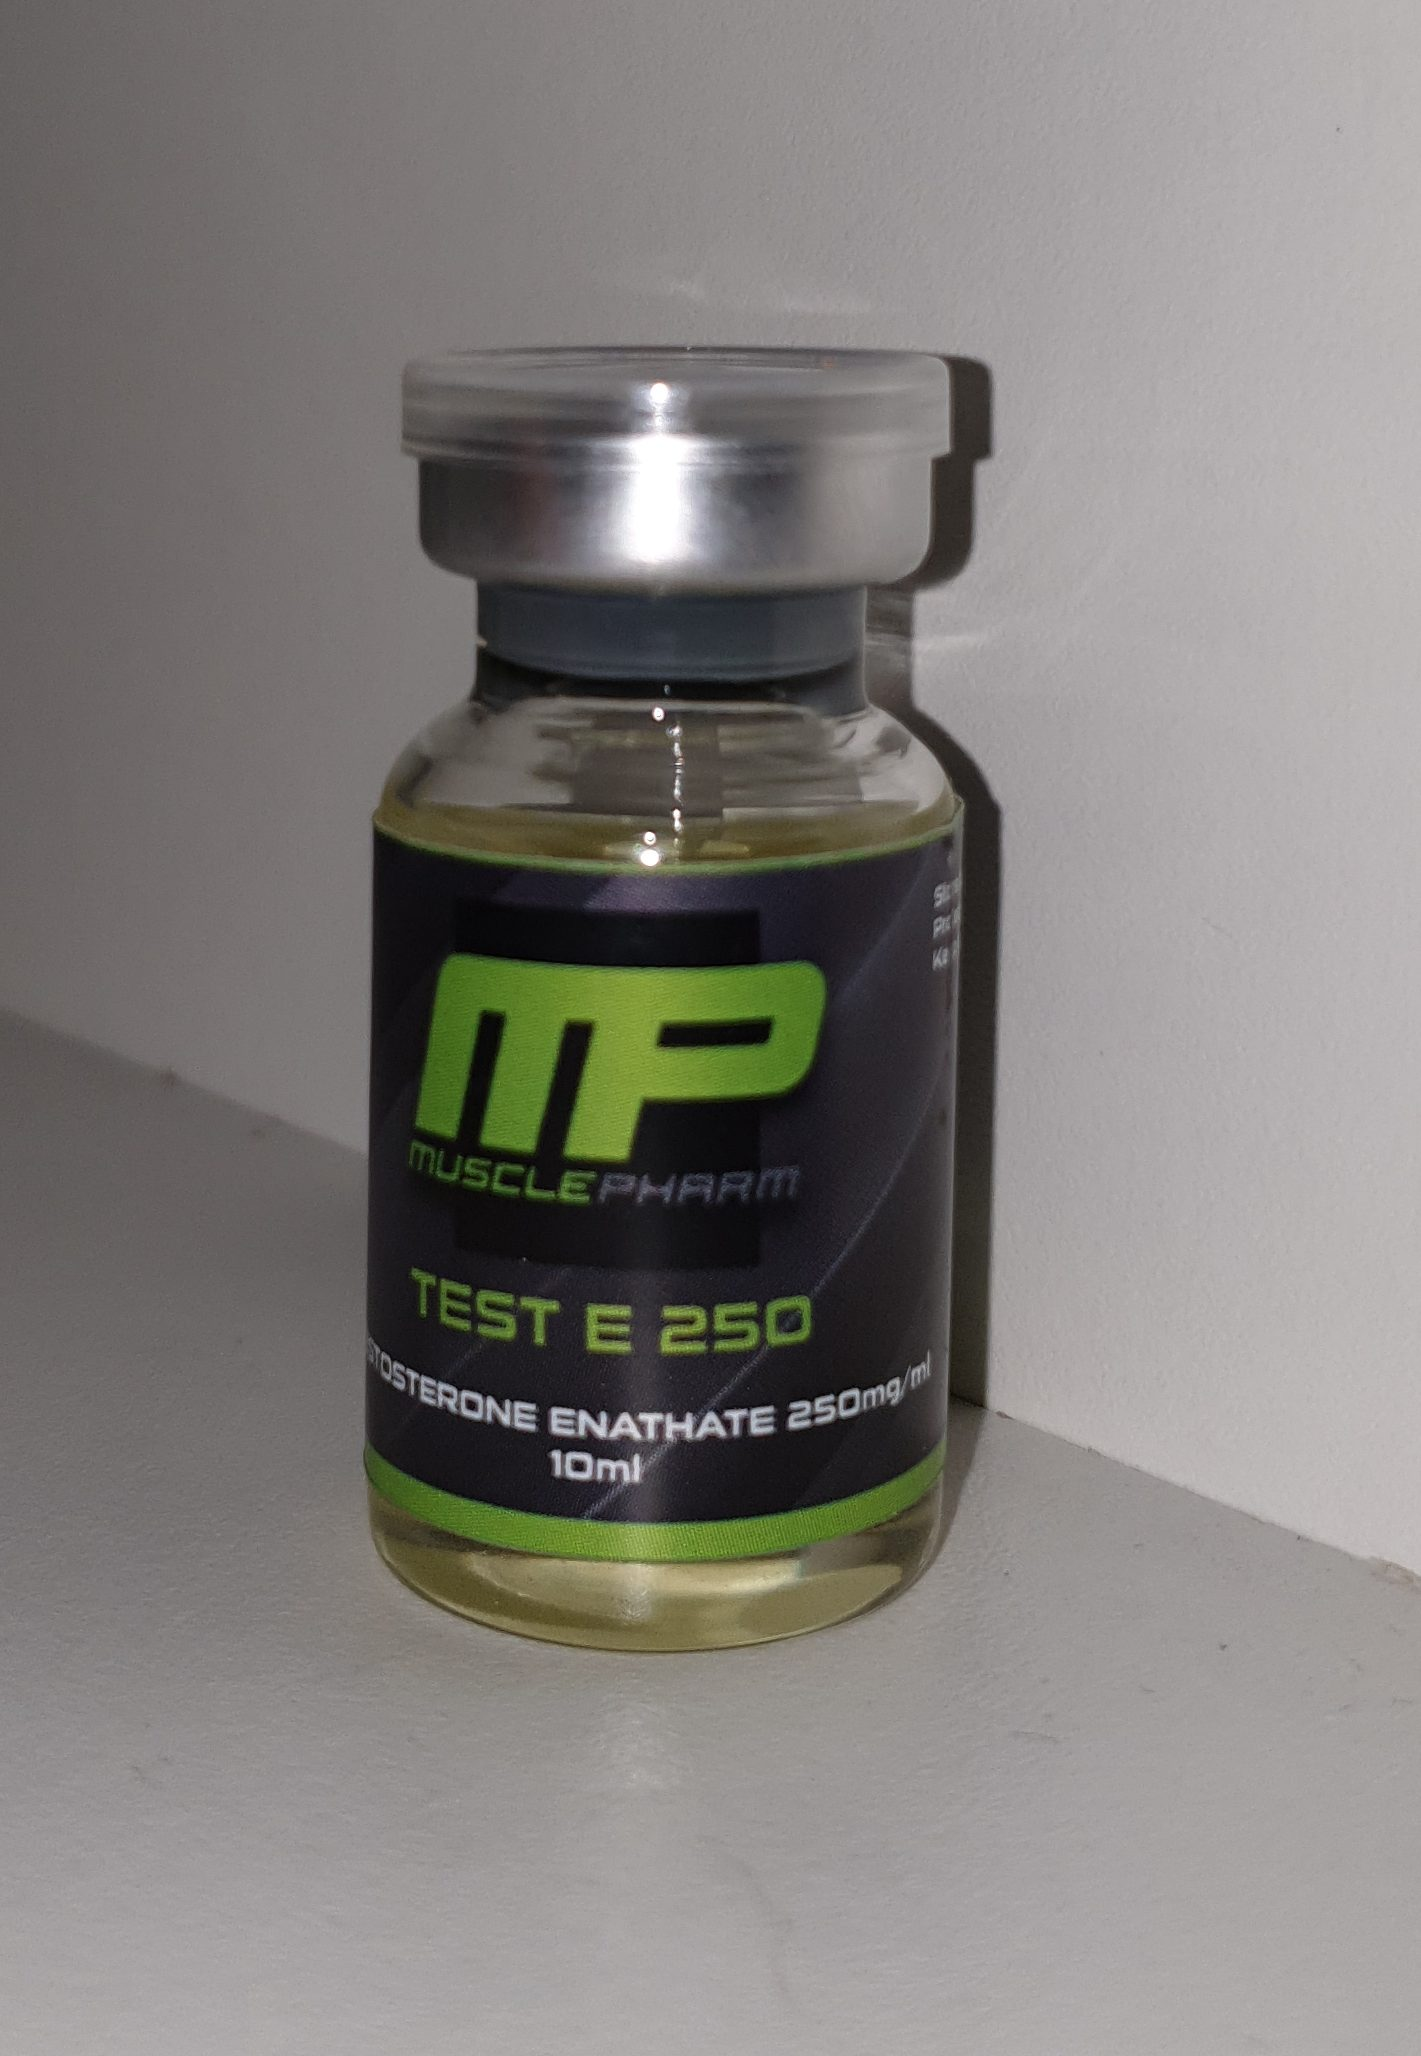 MP musclepharm Testosteron Enanthate 250 mg/ml 10 ml vial